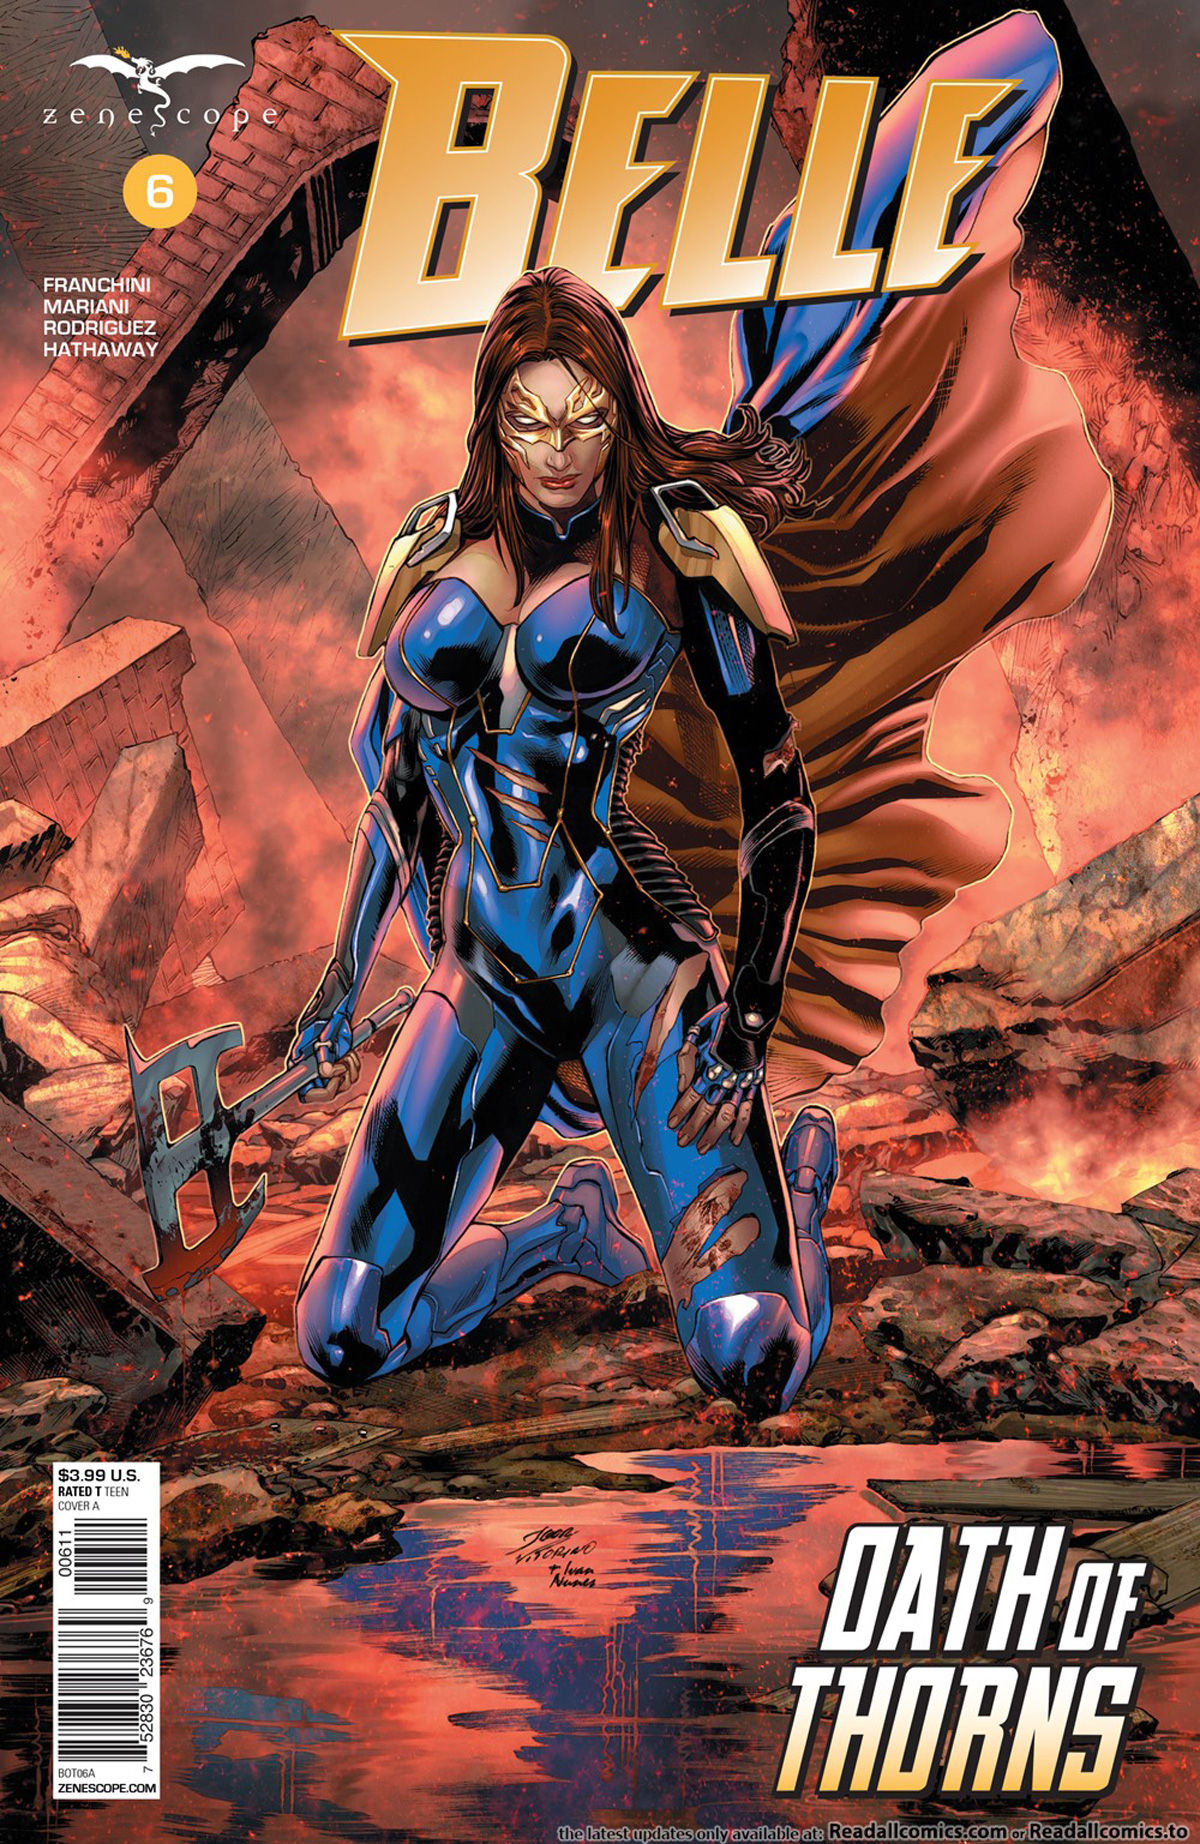 Grimm Fairy Tales Presents Belle Oath Of Thorns #6 Cover A Igor Vitorino